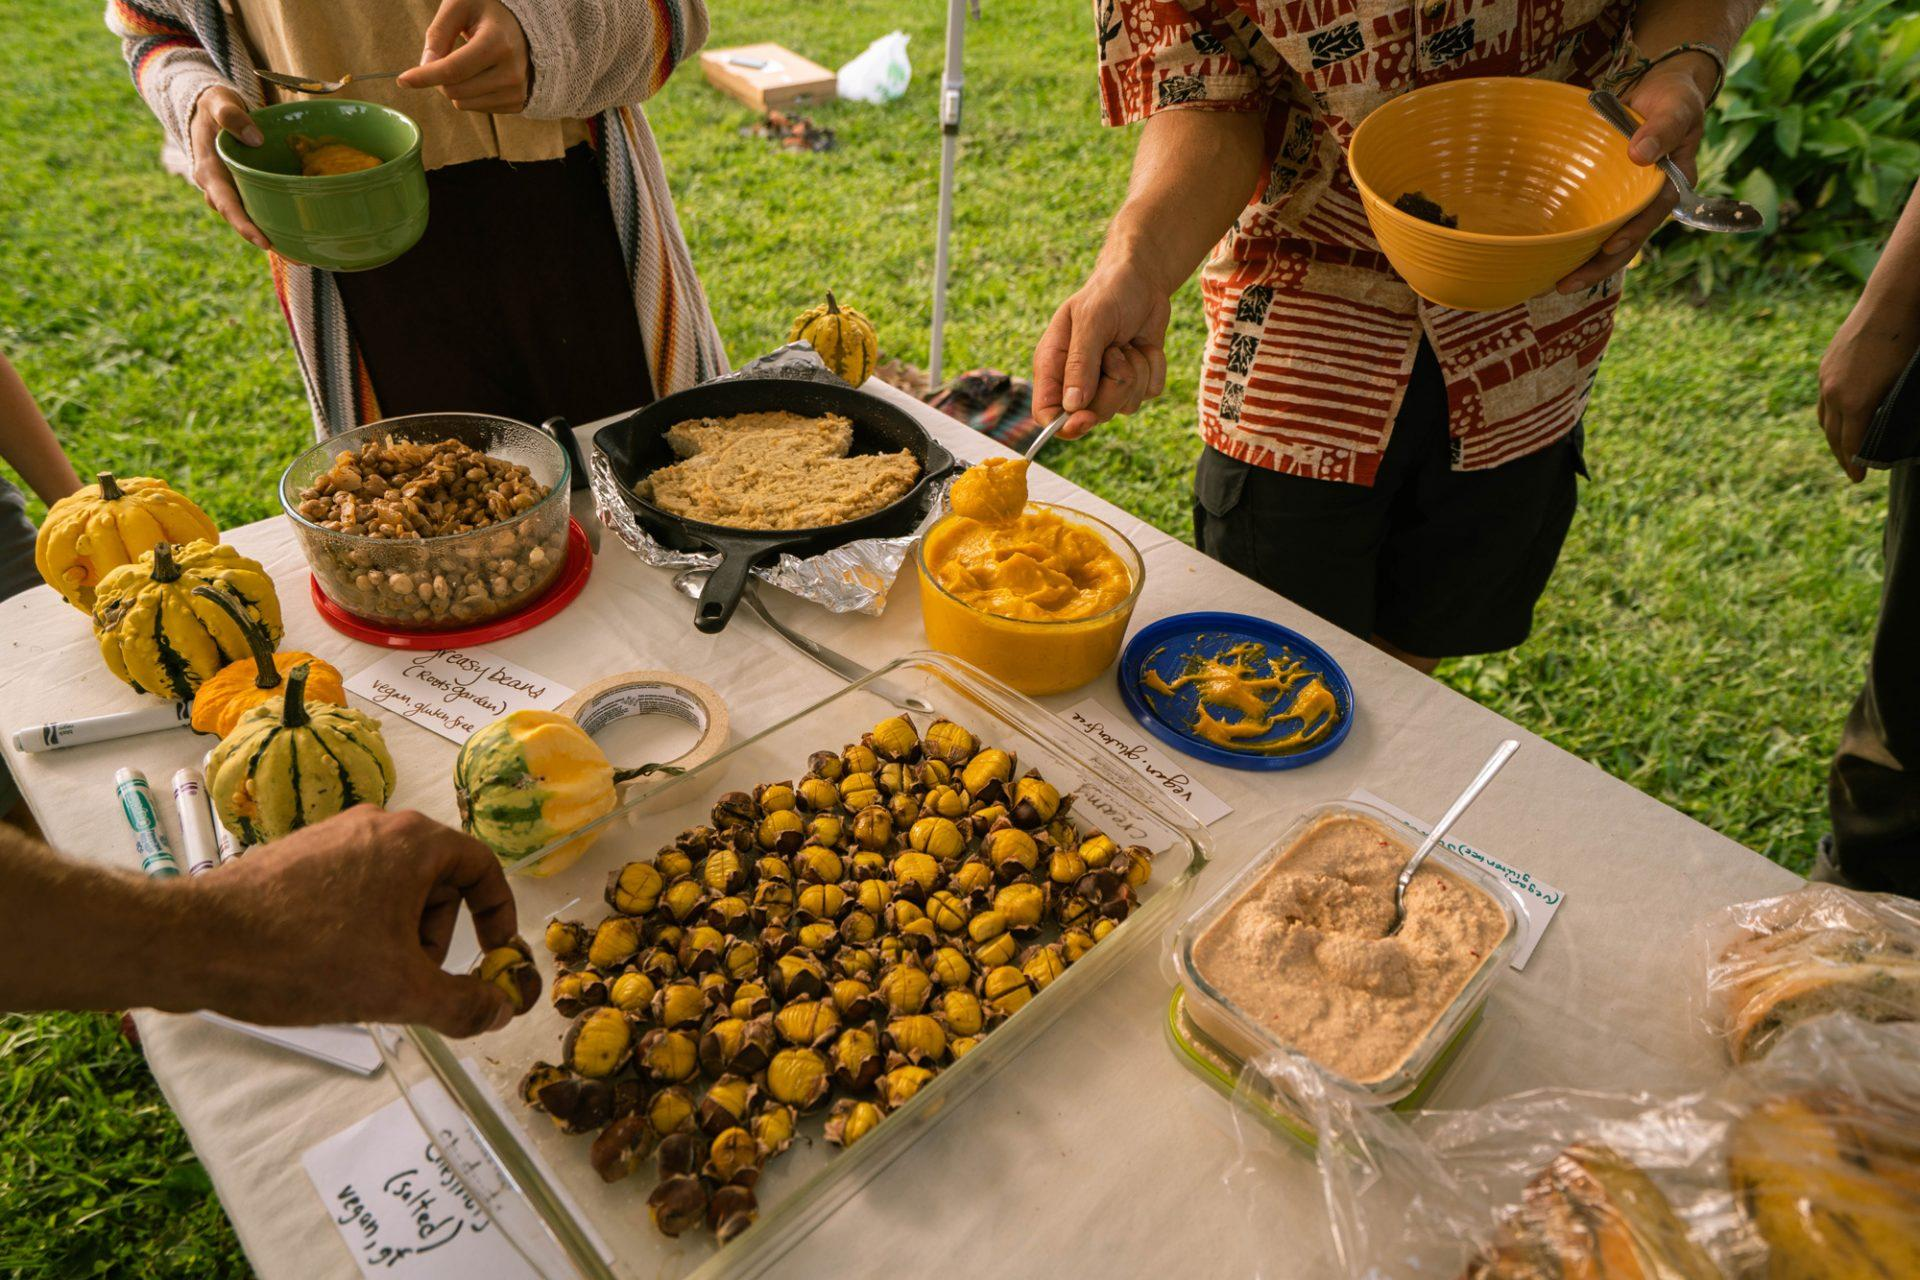 The table spread at the Equinox Harvest Celebration featuring food entirely grown on campus gardens or sourced from local producers. Pictured is pumpkin dip, salted chestnuts, cashew spread, Stick Boy bread, greasy beans, vegan cornbread and garden grown gourds.